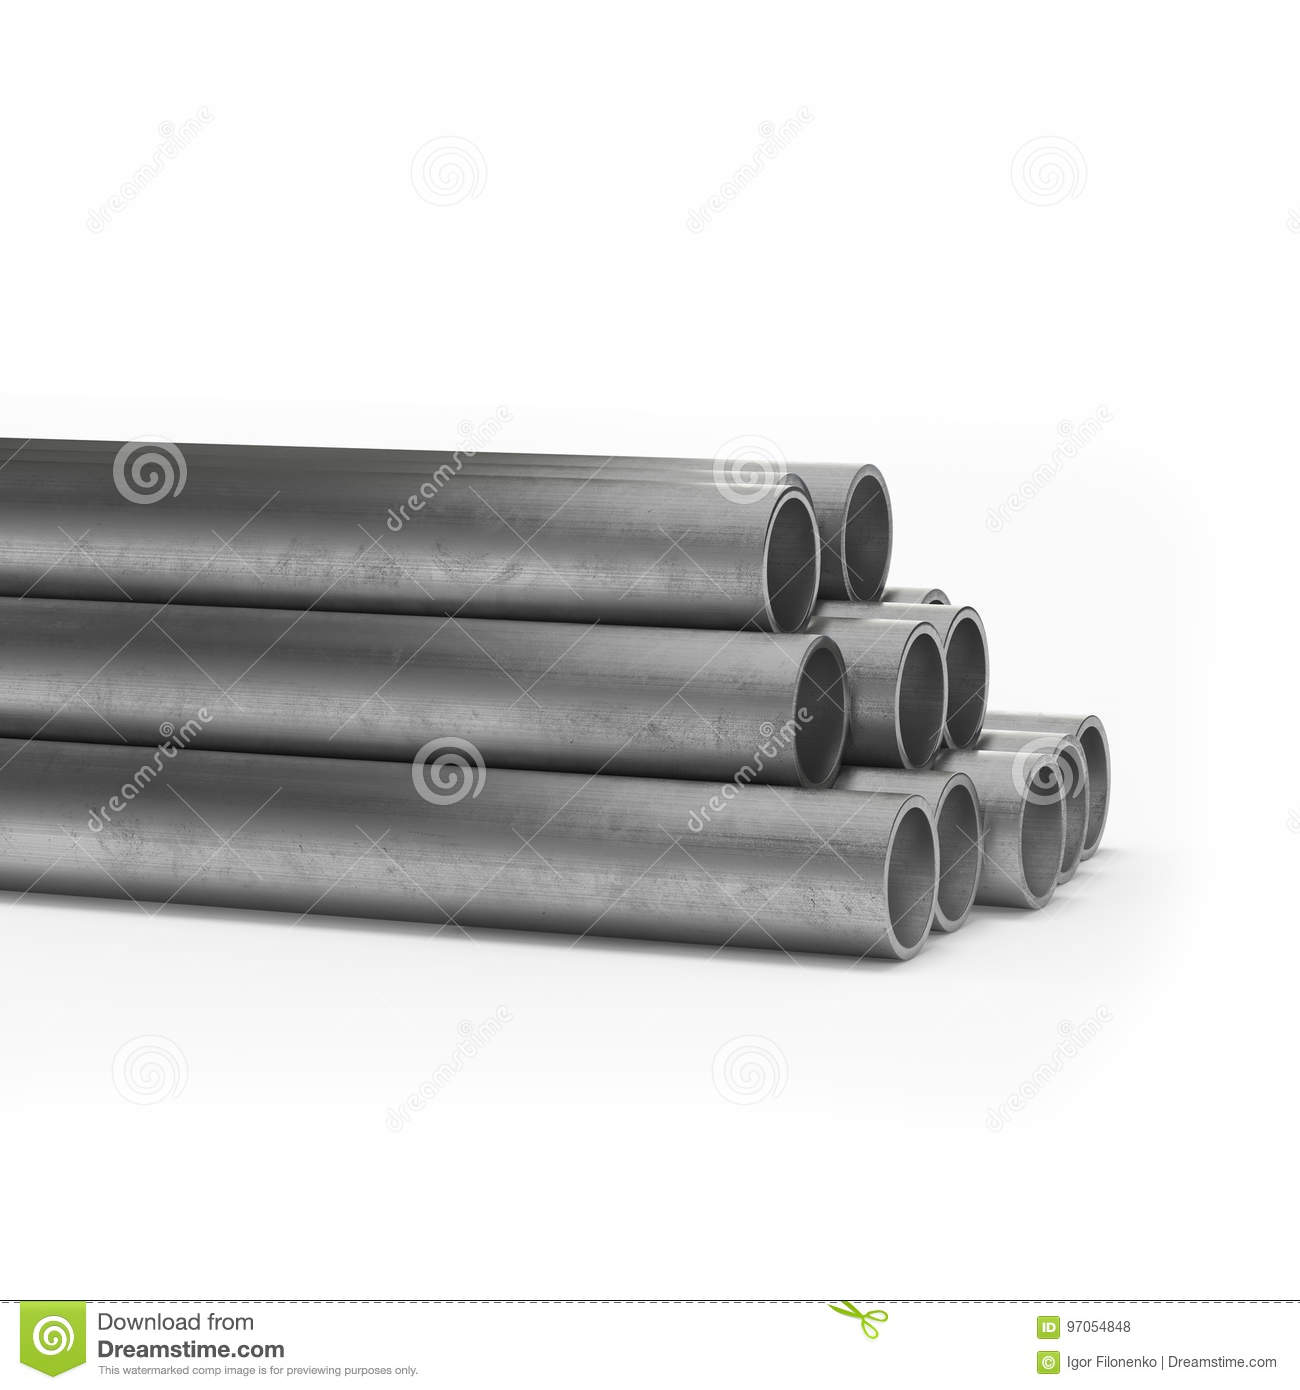 Stainless Steel Tube 3d Rendering Isolated  Stock Photo